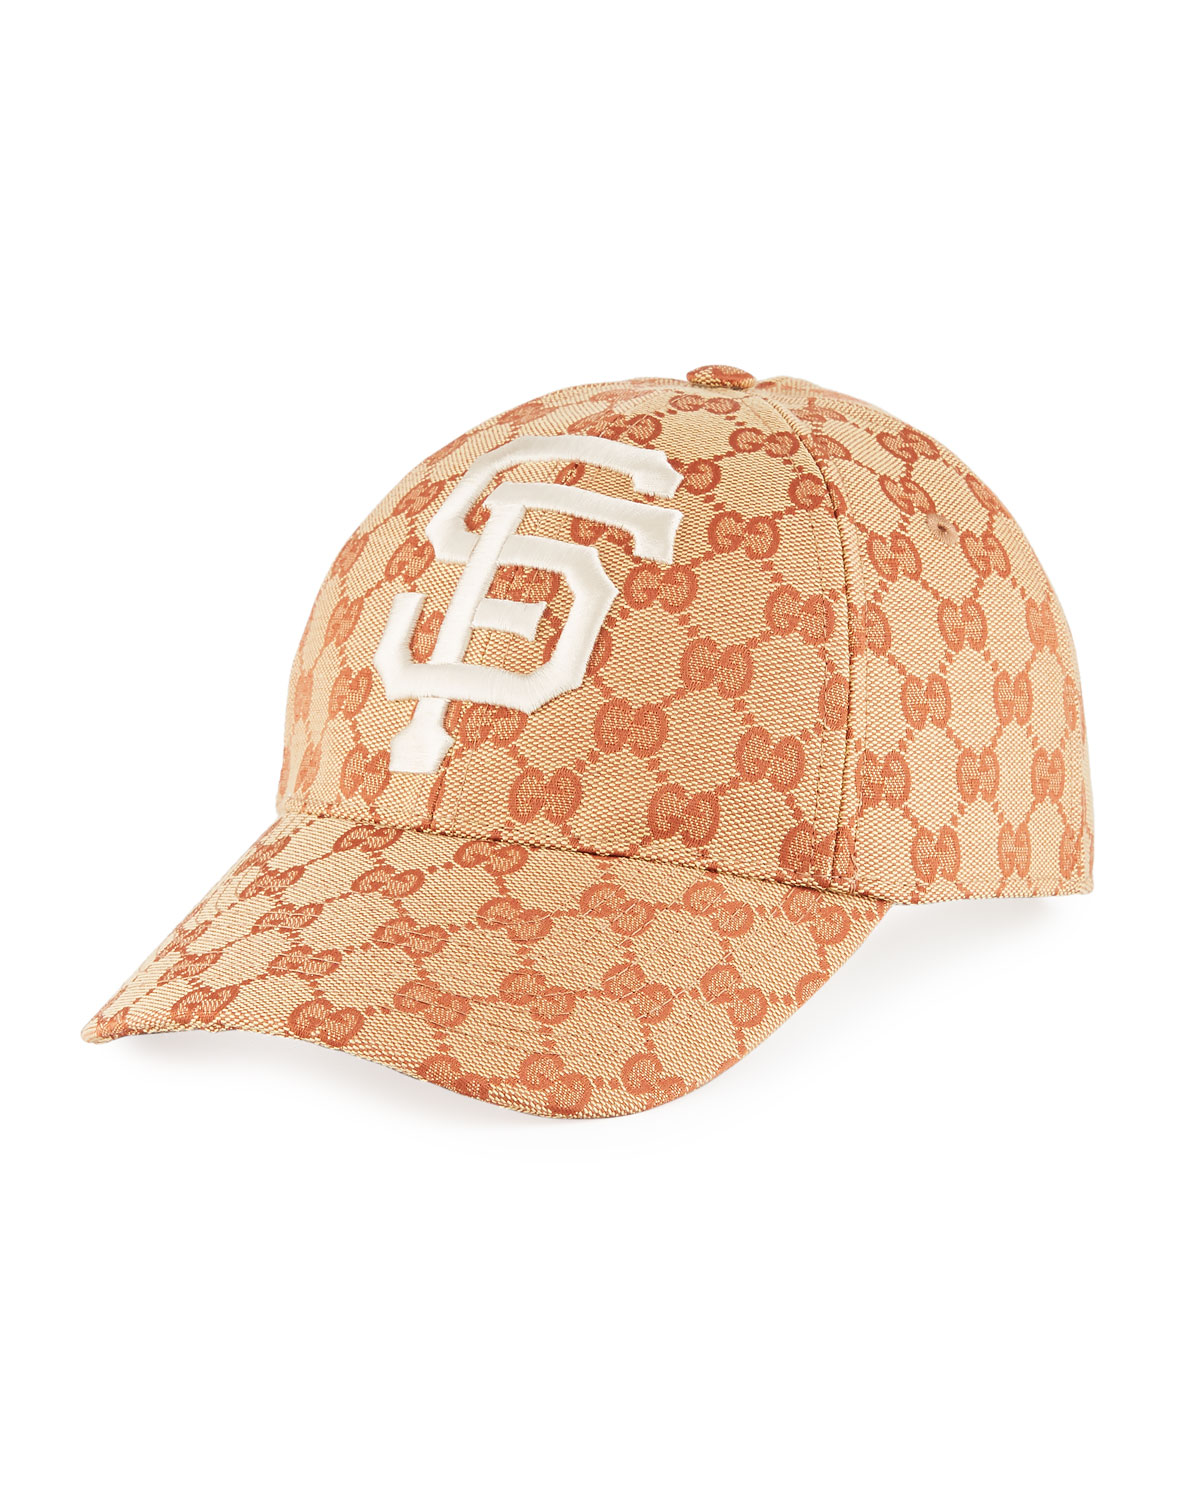 cdf9178c0a6 Gucci SF Giants GG Supreme Baseball Hat